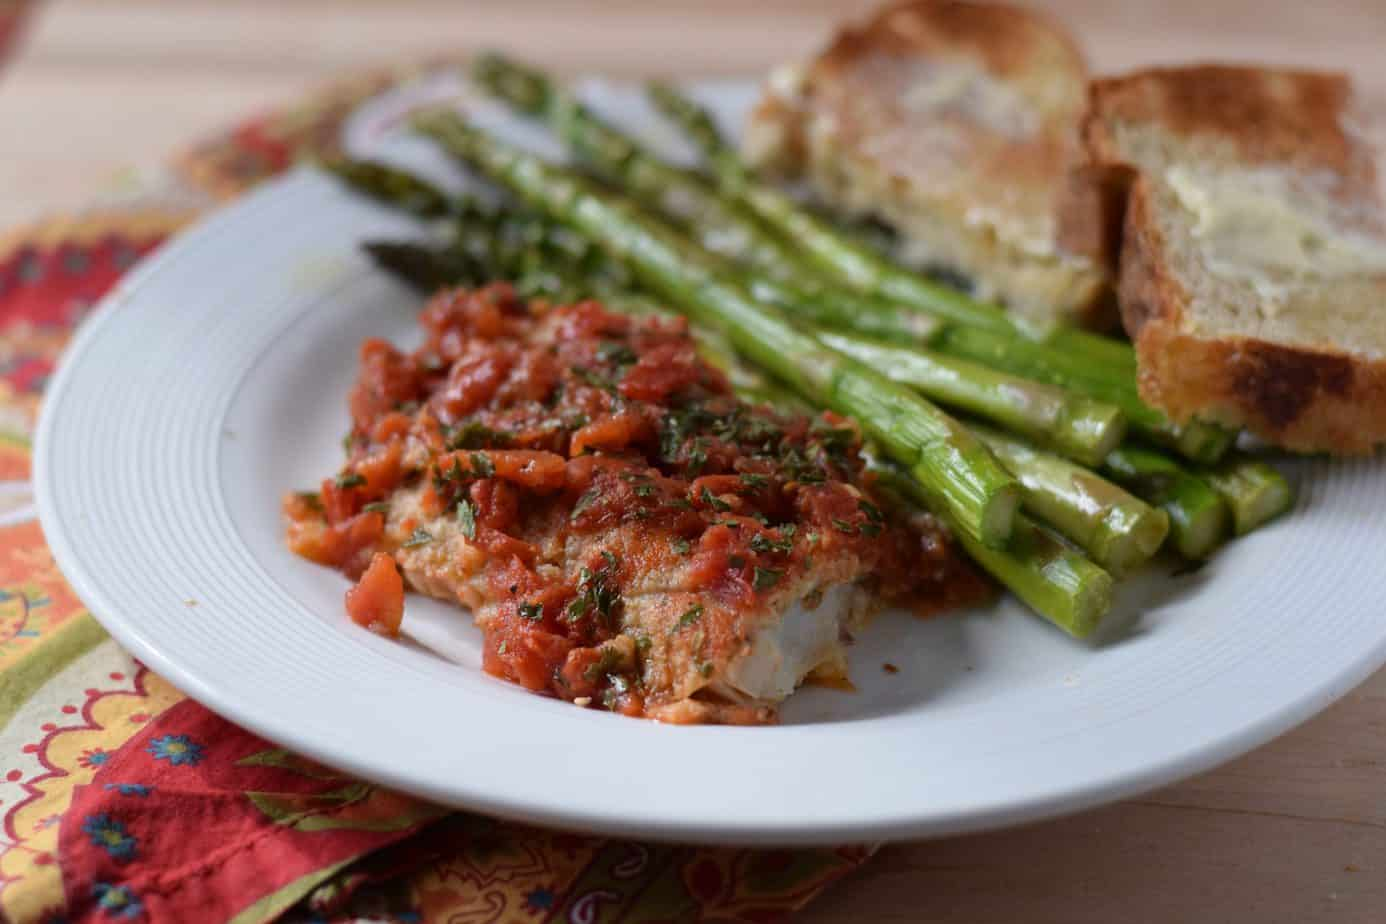 Baked fish cooked in a foil packet topped with tomatoes next to roasted asparagus and two slices of whole wheat bread and butter.